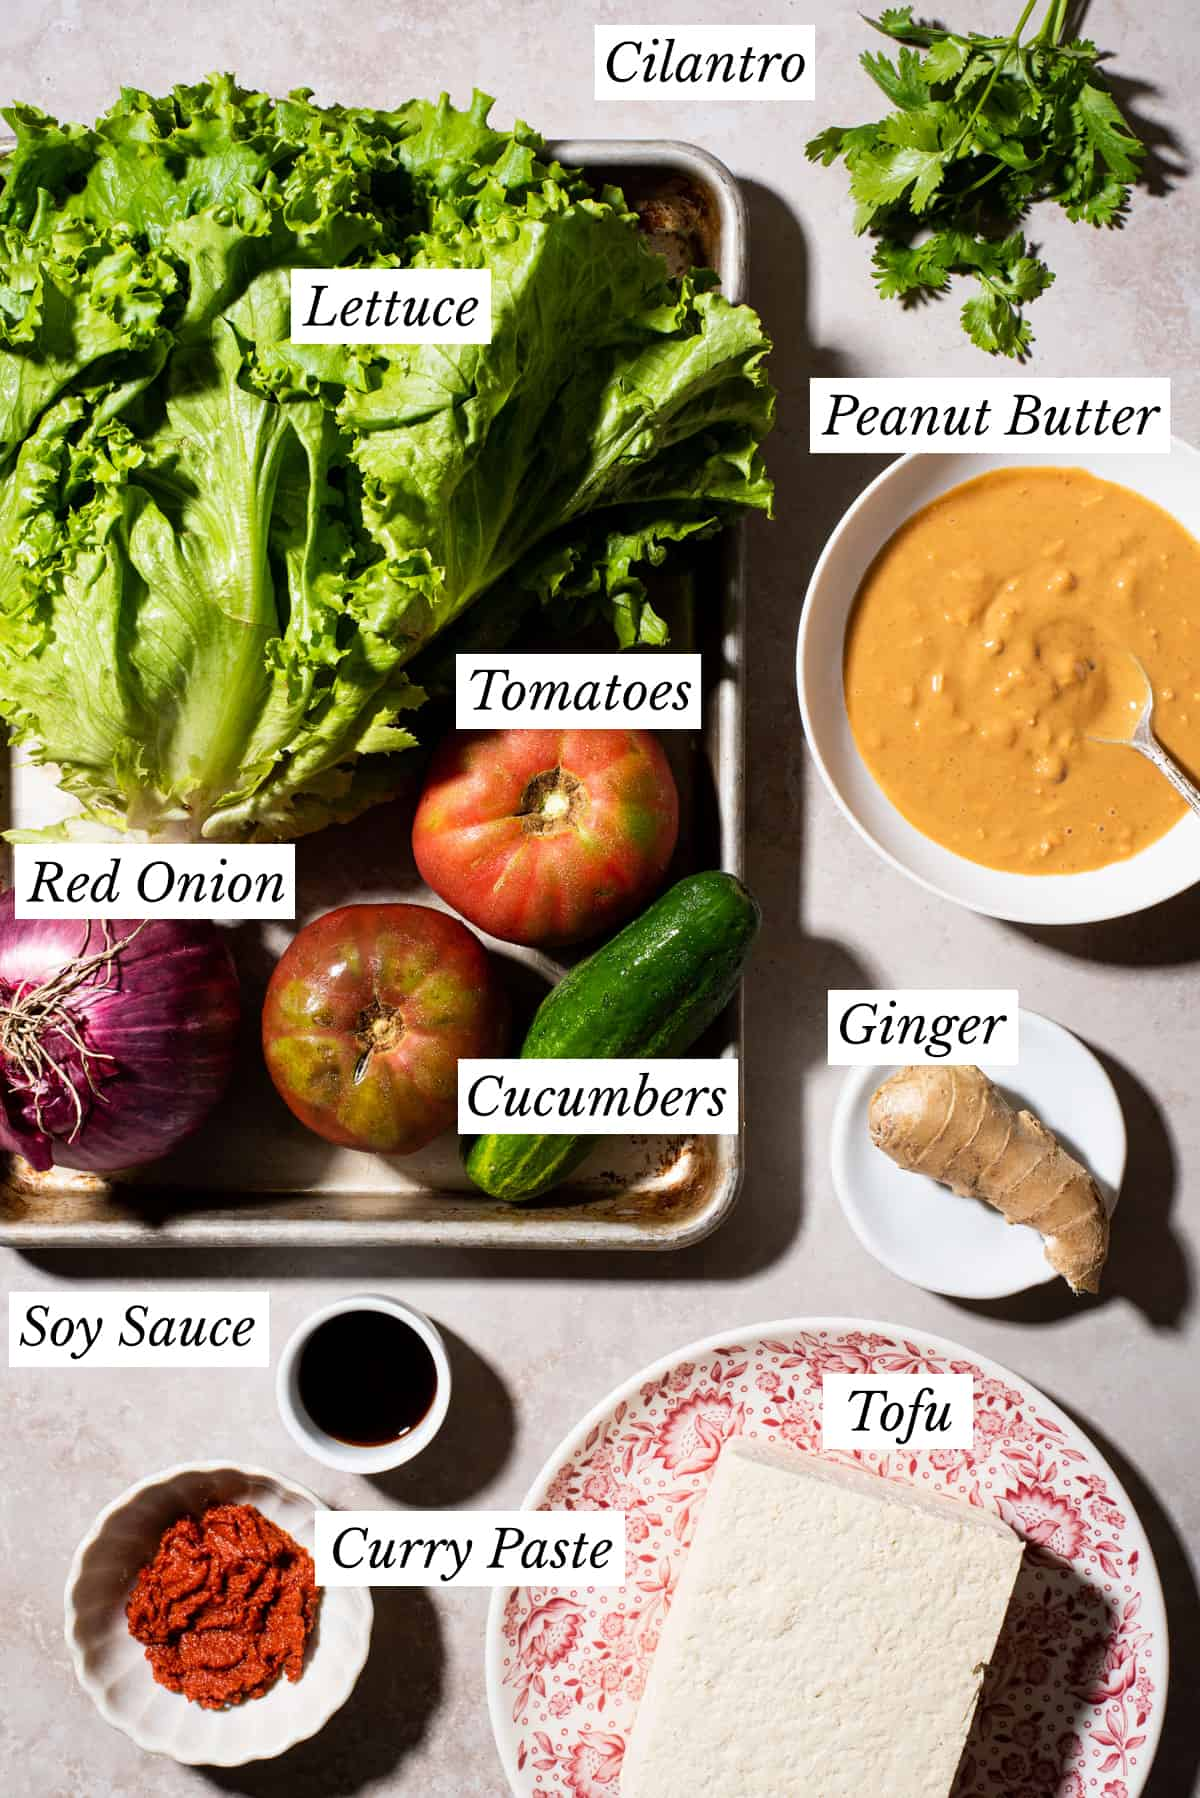 Ingredients gathered to make healthy thai salad with peanut sauce.